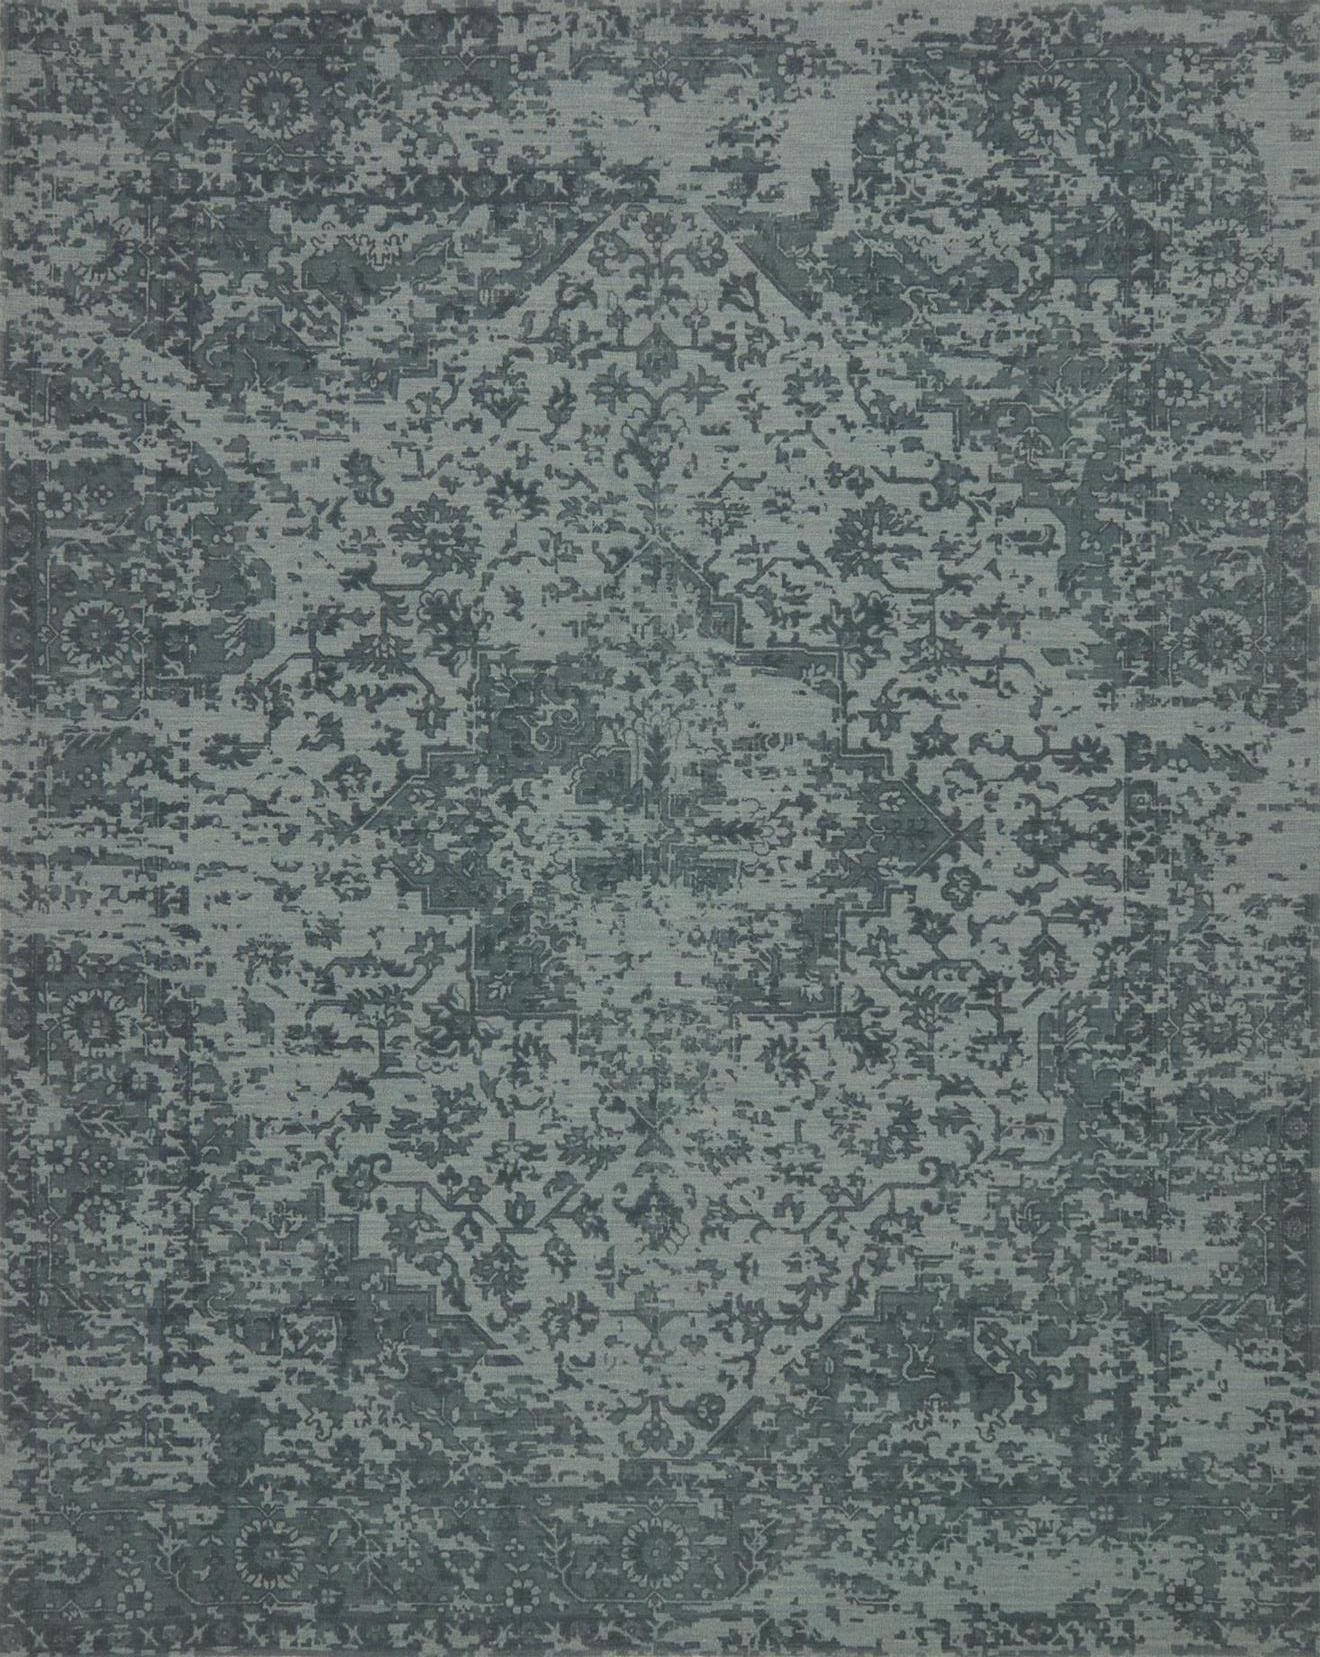 Lily Park Lp 03 Teal Area Rug Magnolia Home By Joanna